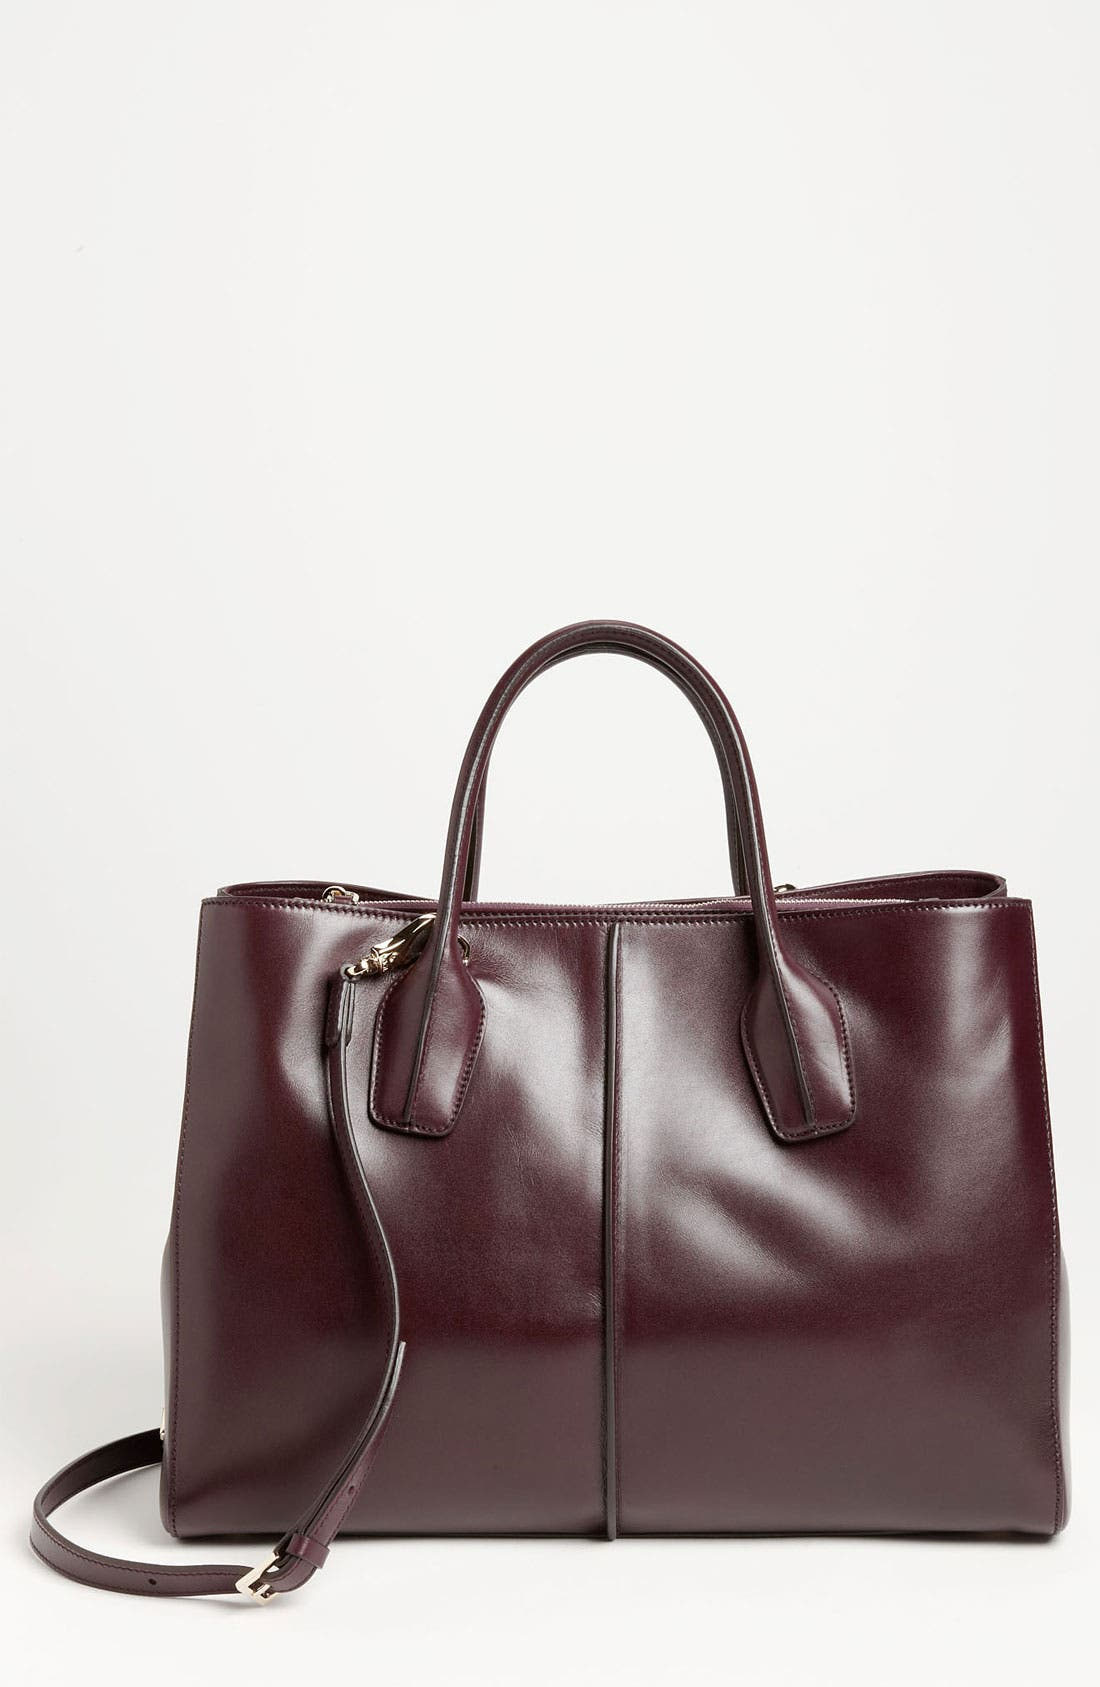 Main Image - Tod's 'D-Styling - Lavoro' Leather Tote